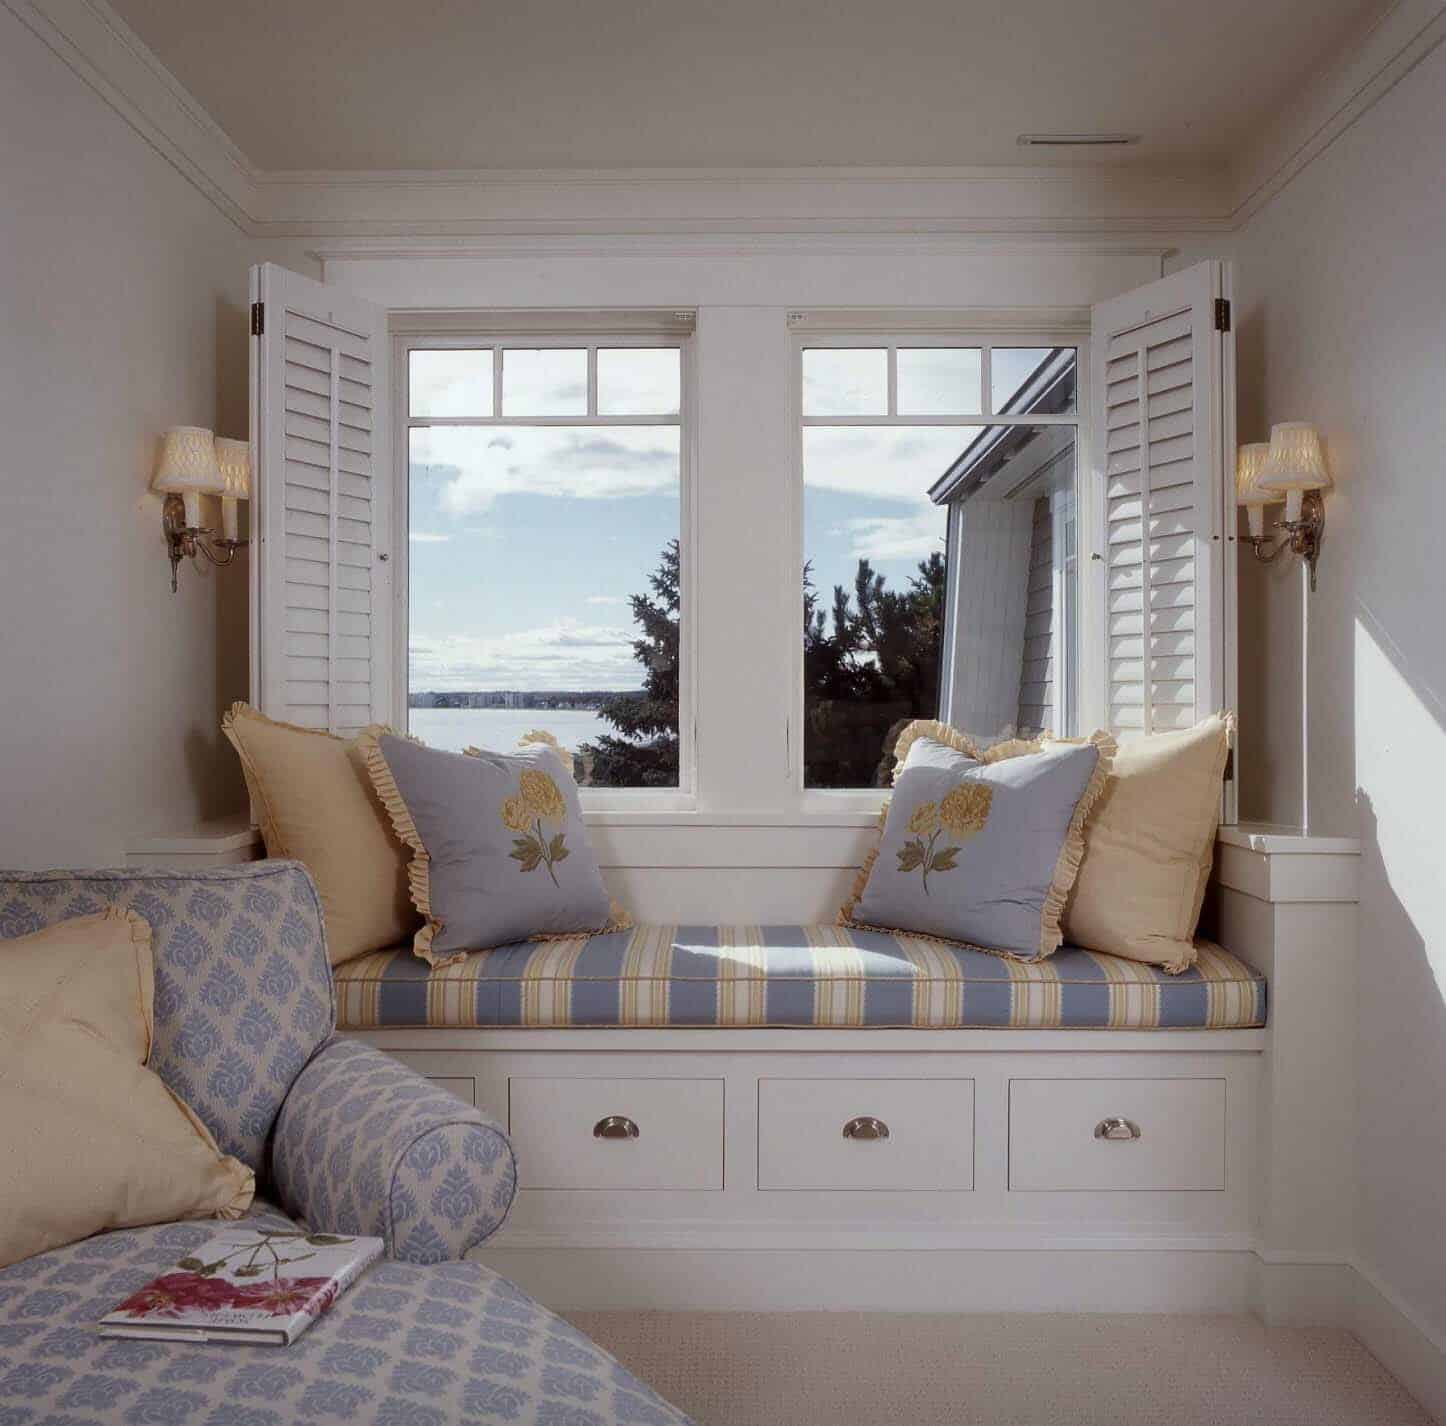 Incredible 33 Amazing Built In Window Seats Capturing Mesmerizing Ocean Unemploymentrelief Wooden Chair Designs For Living Room Unemploymentrelieforg